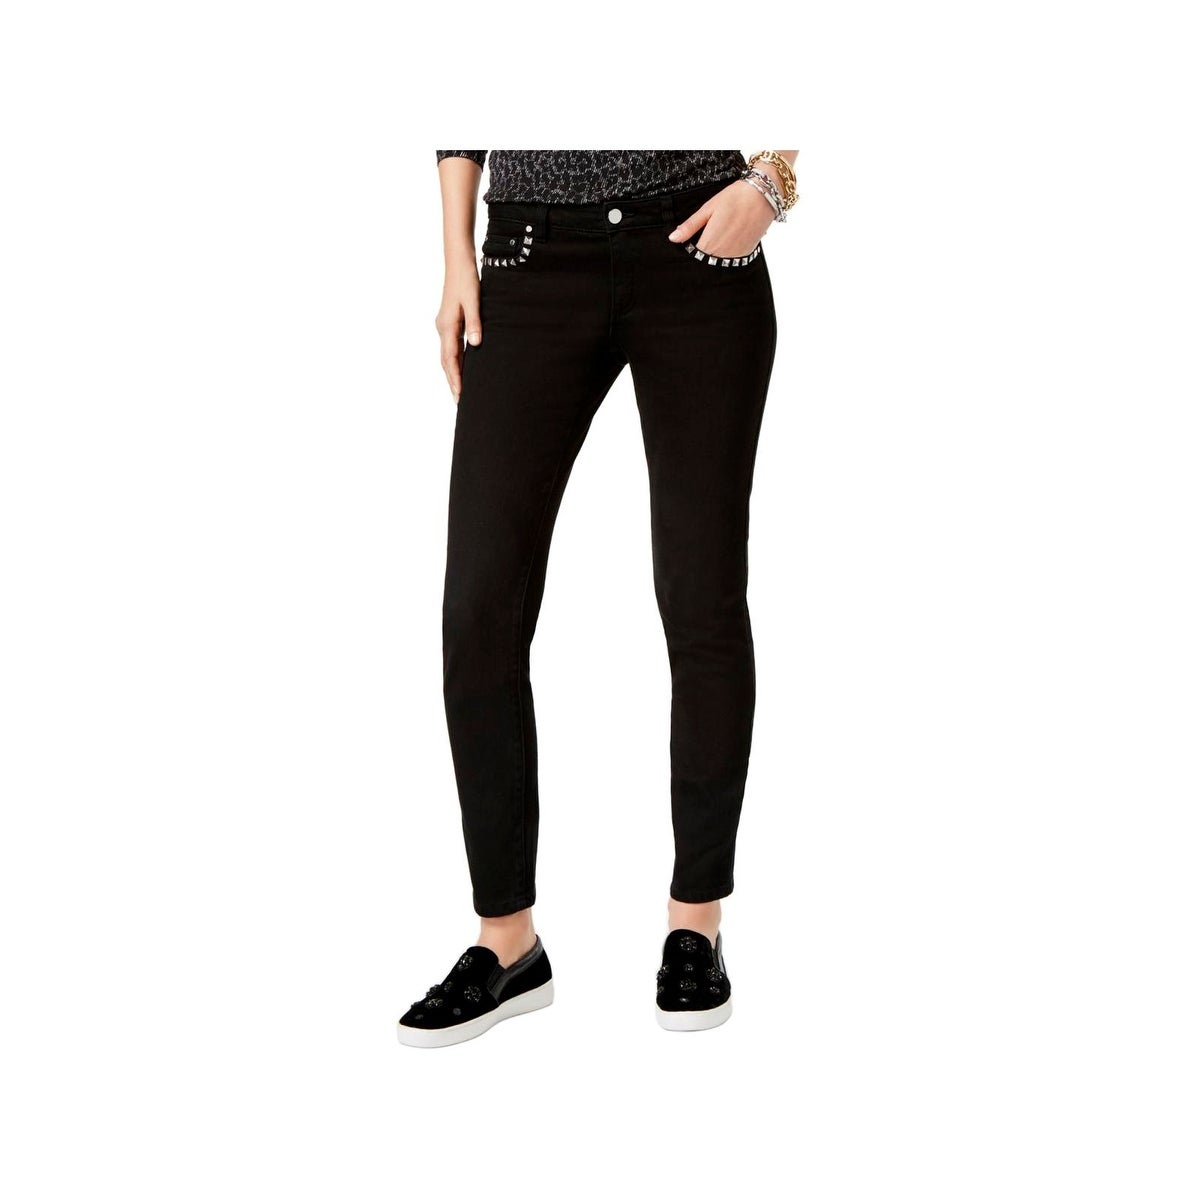 dd030cdad3b0 MICHAEL Michael Kors Pants   Find Great Women's Clothing Deals Shopping at  Overstock